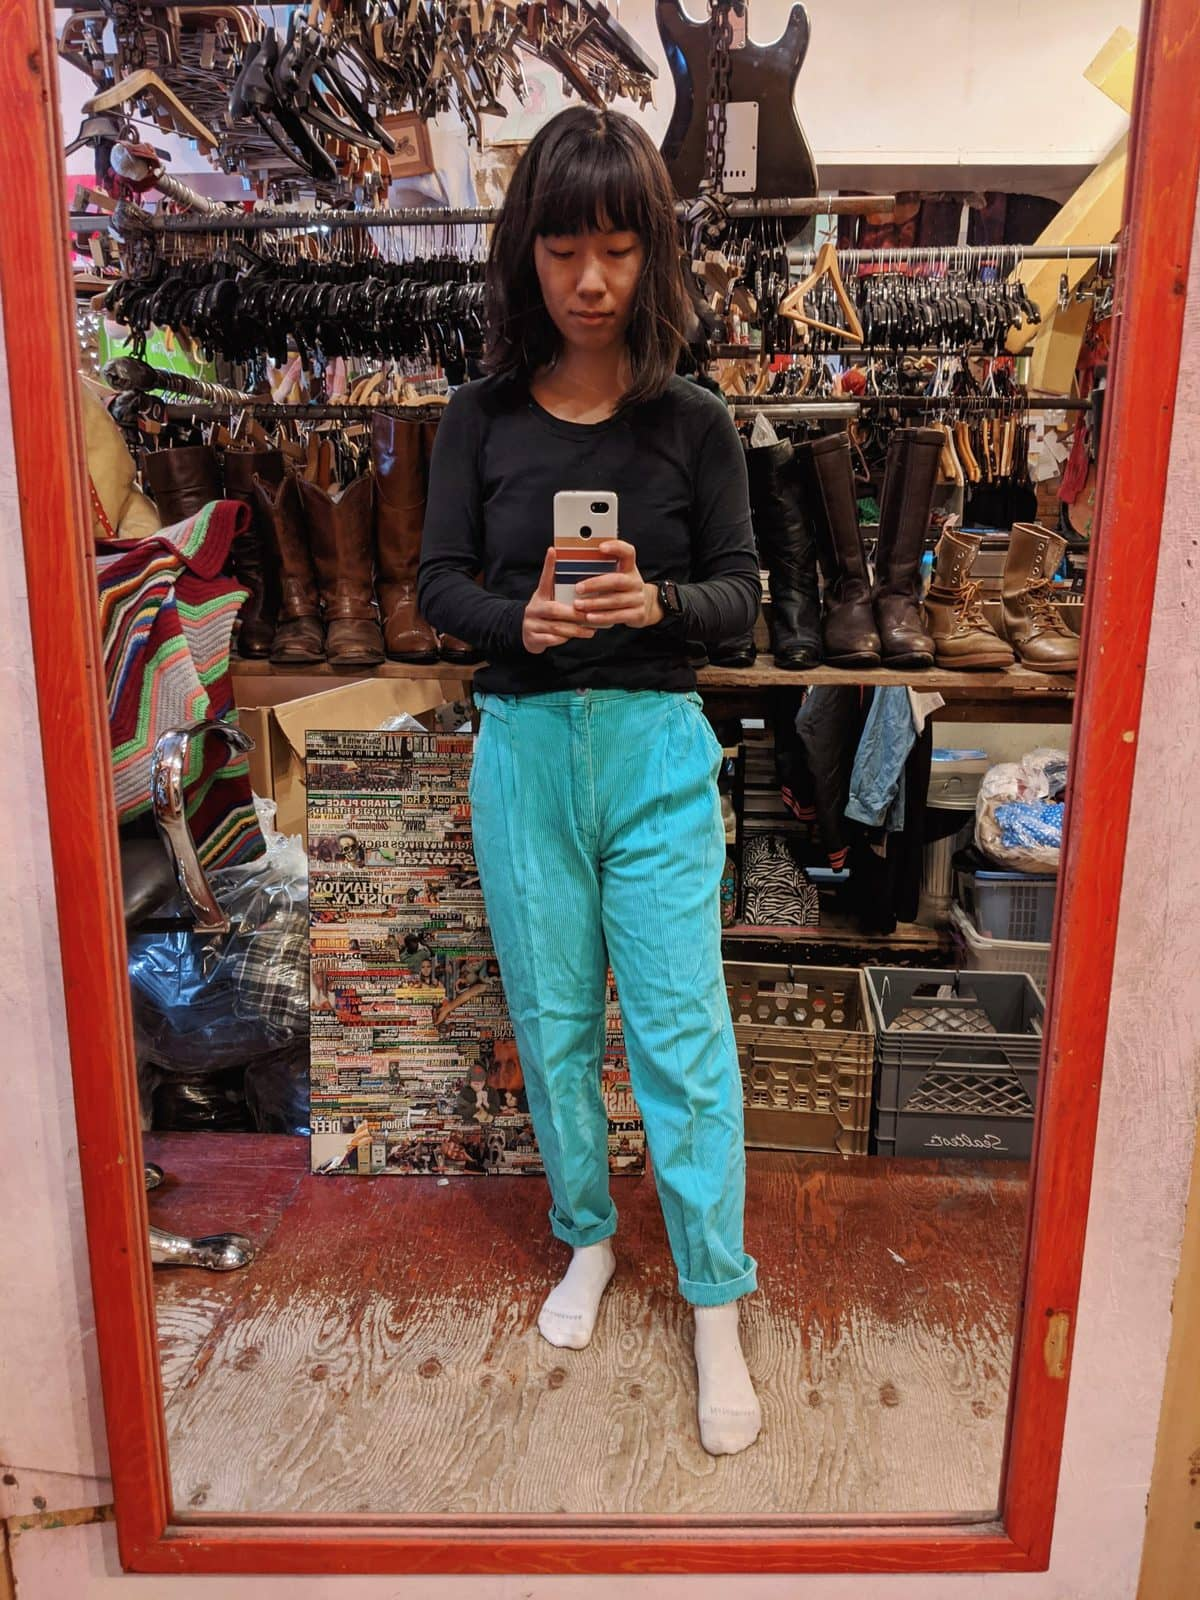 trying on bright blue pants in a thrift store